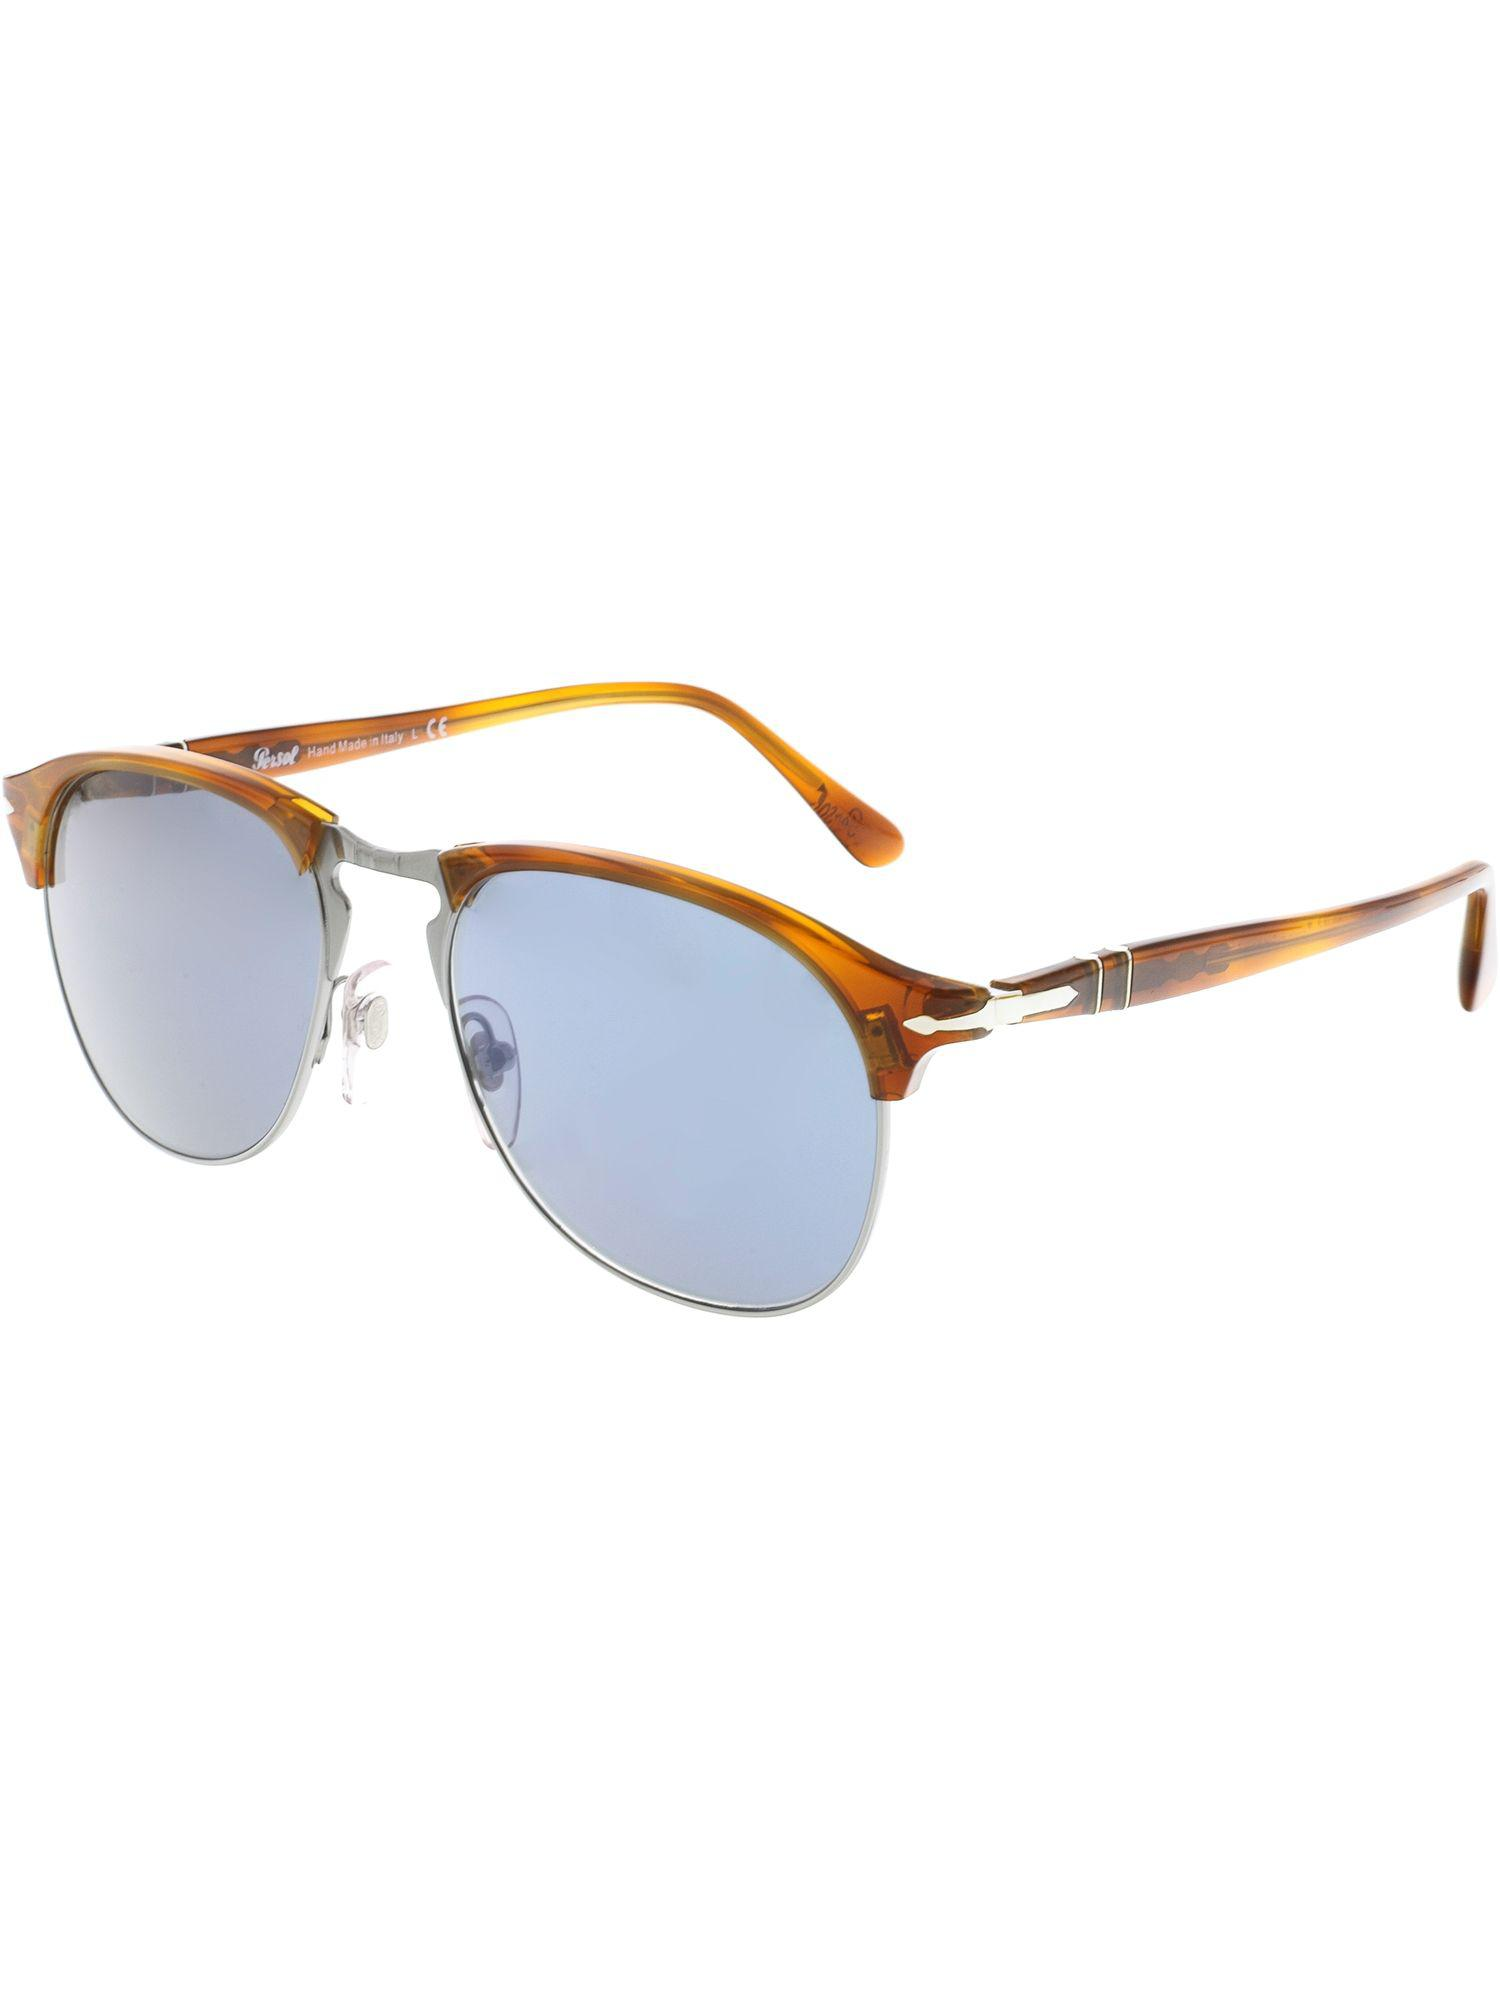 810a721d36 Lyst - Persol Men s Mirrored Po8649s-96 56-53 Brown Oval Sunglasses ...